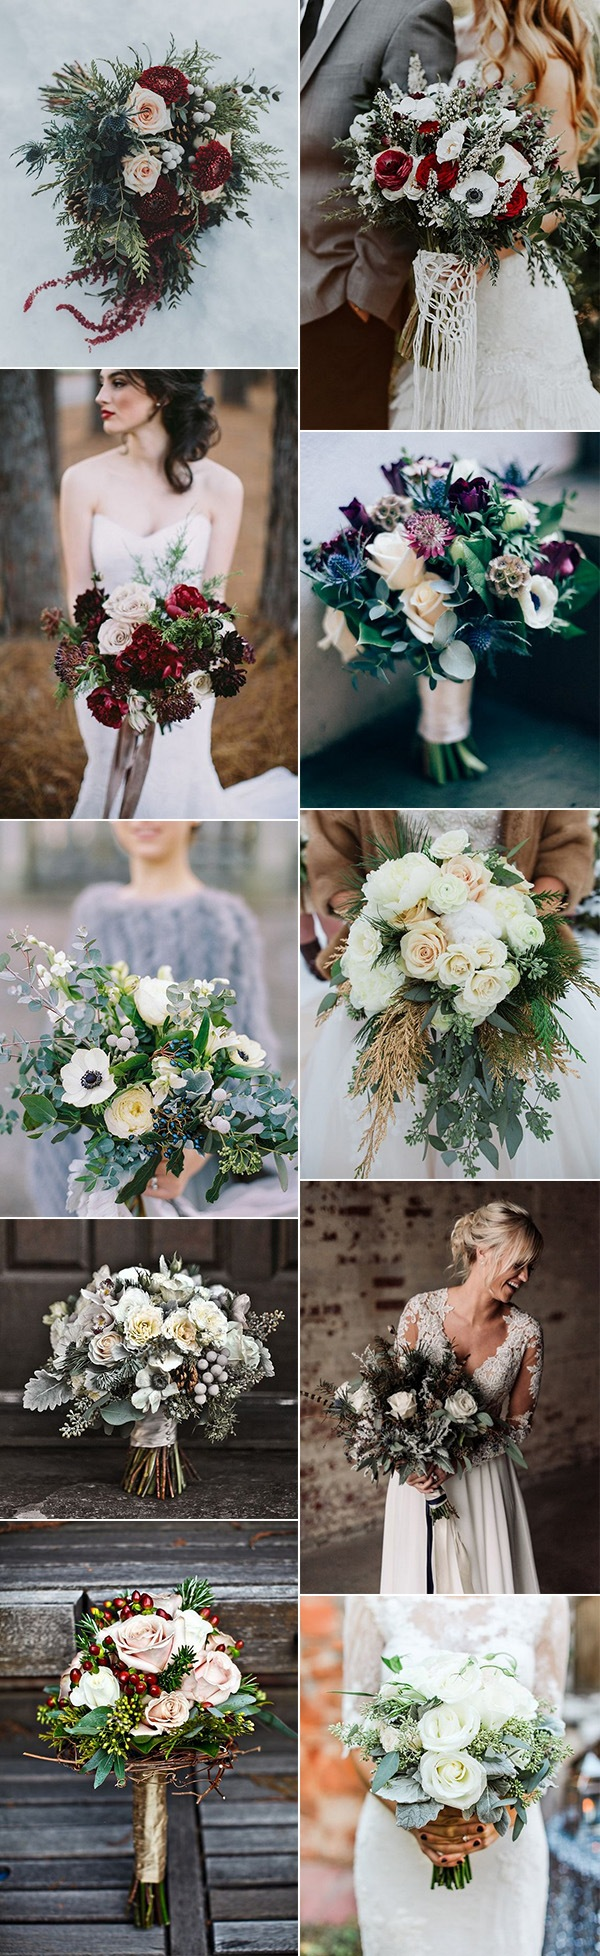 trending wedding bouquet ideas for fall and winter 2018